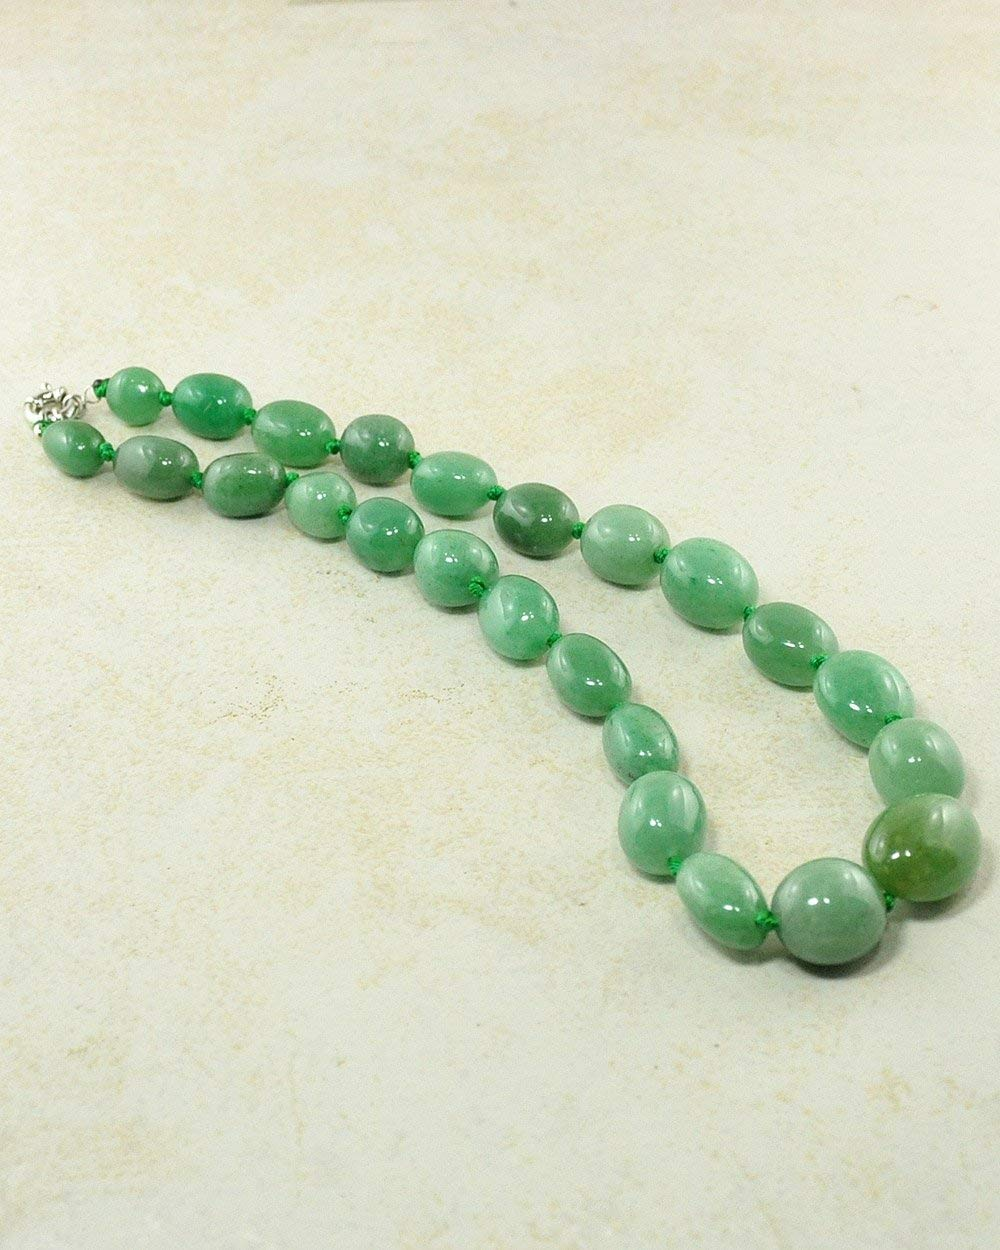 SIVALYA Green Aventurine Large Crystals Necklace with Silver Clasp Genuine Chunky Natural Stones